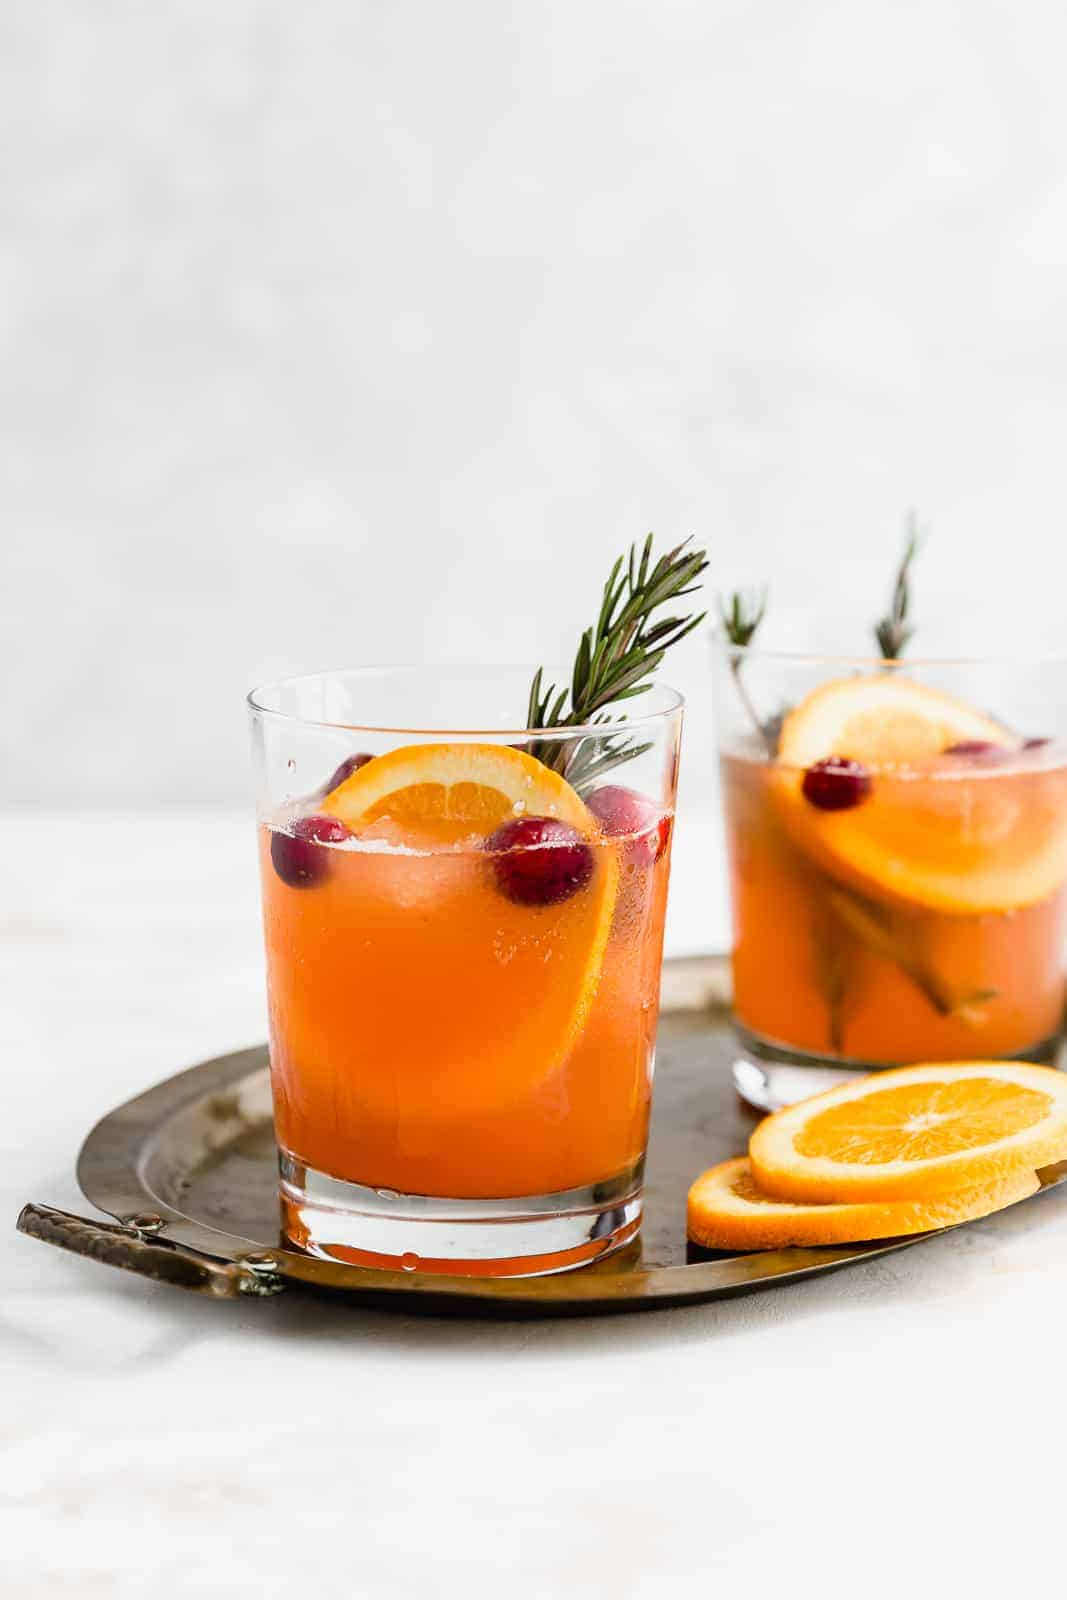 Two glasses of Christmas Slush Punch garnished with rosemary, cranberries, and an orange slice.